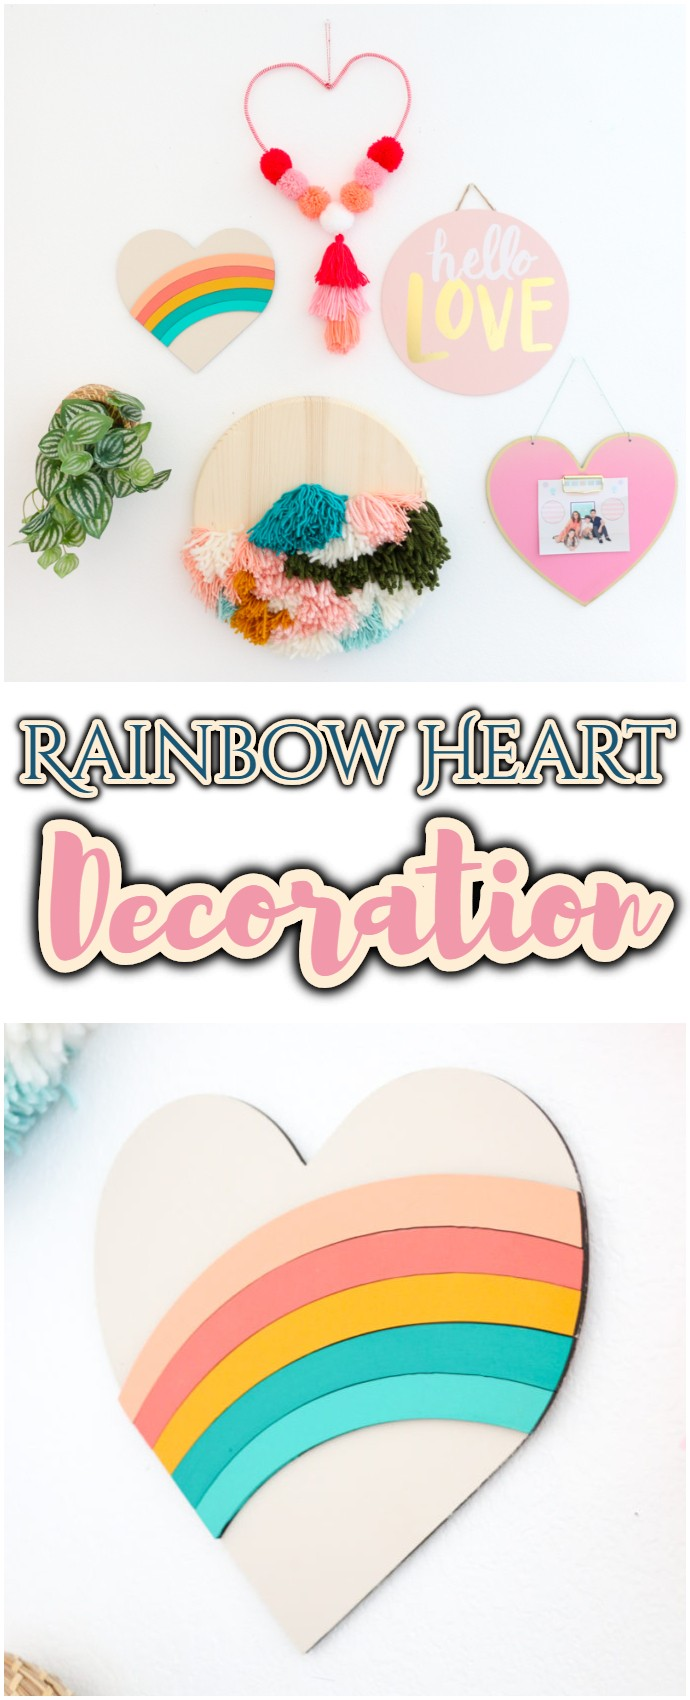 Diy Rainbow Heart Decoration With The Glowforge